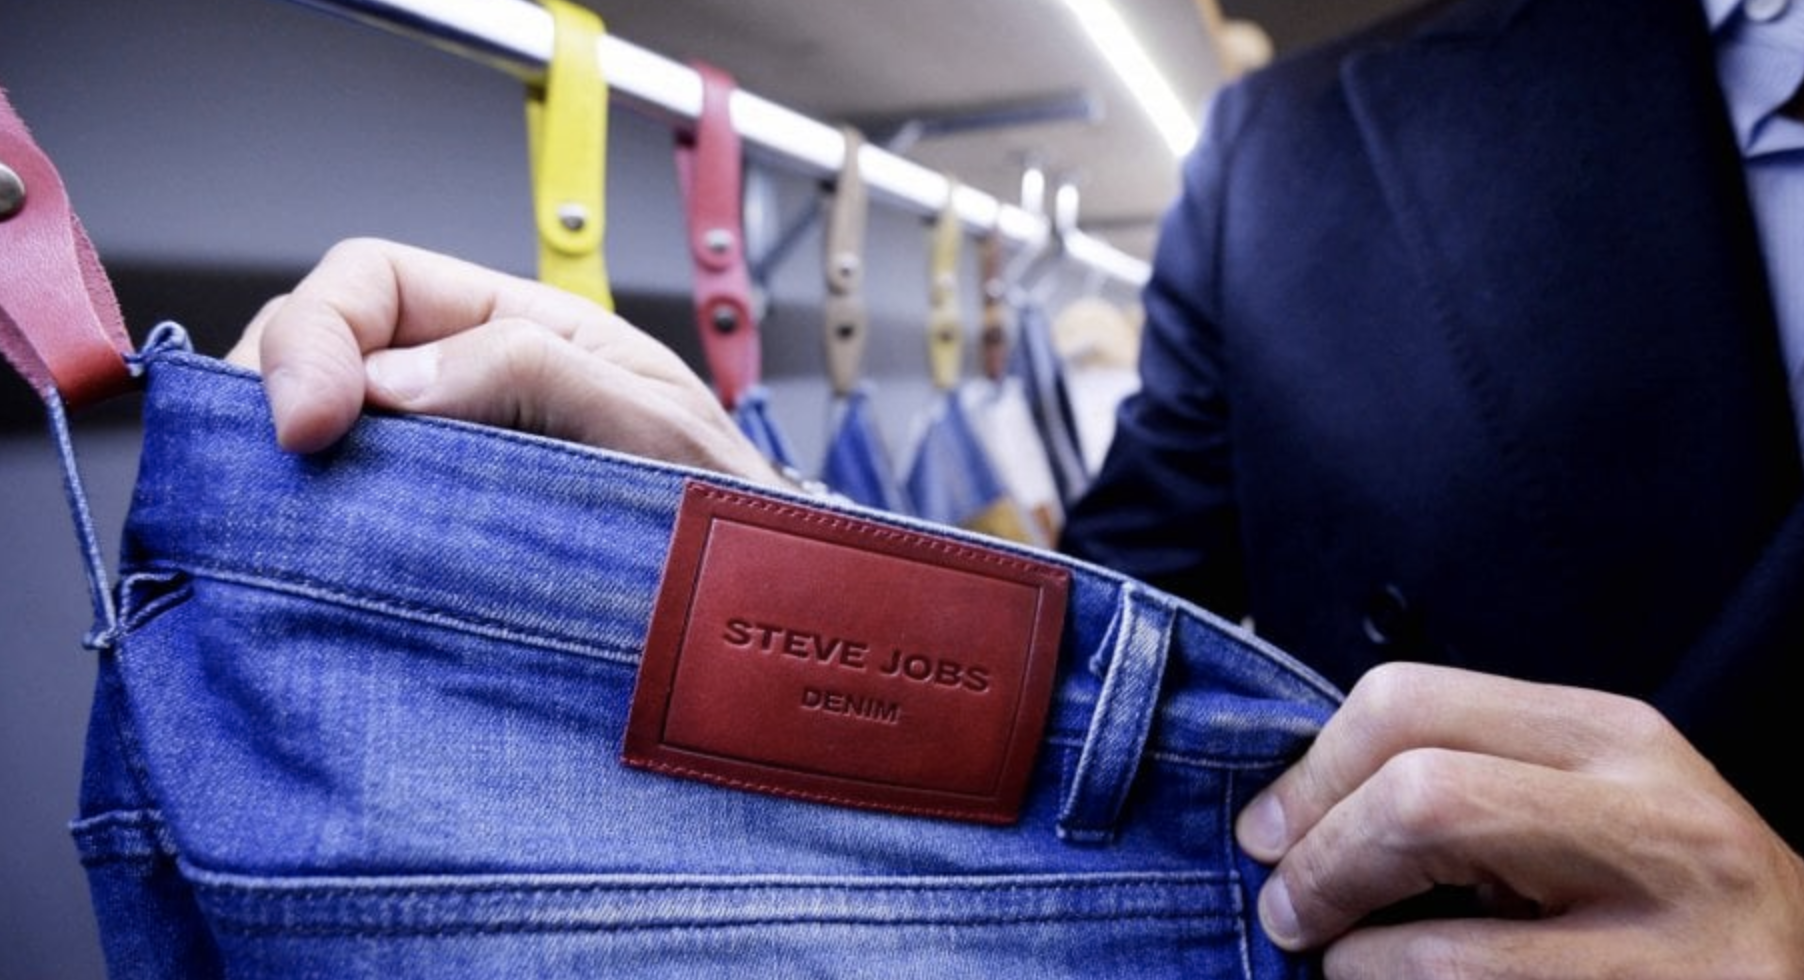 Steve Jobs Jeans Wins Apple Lawsuit Because Letters Aren't Fruit